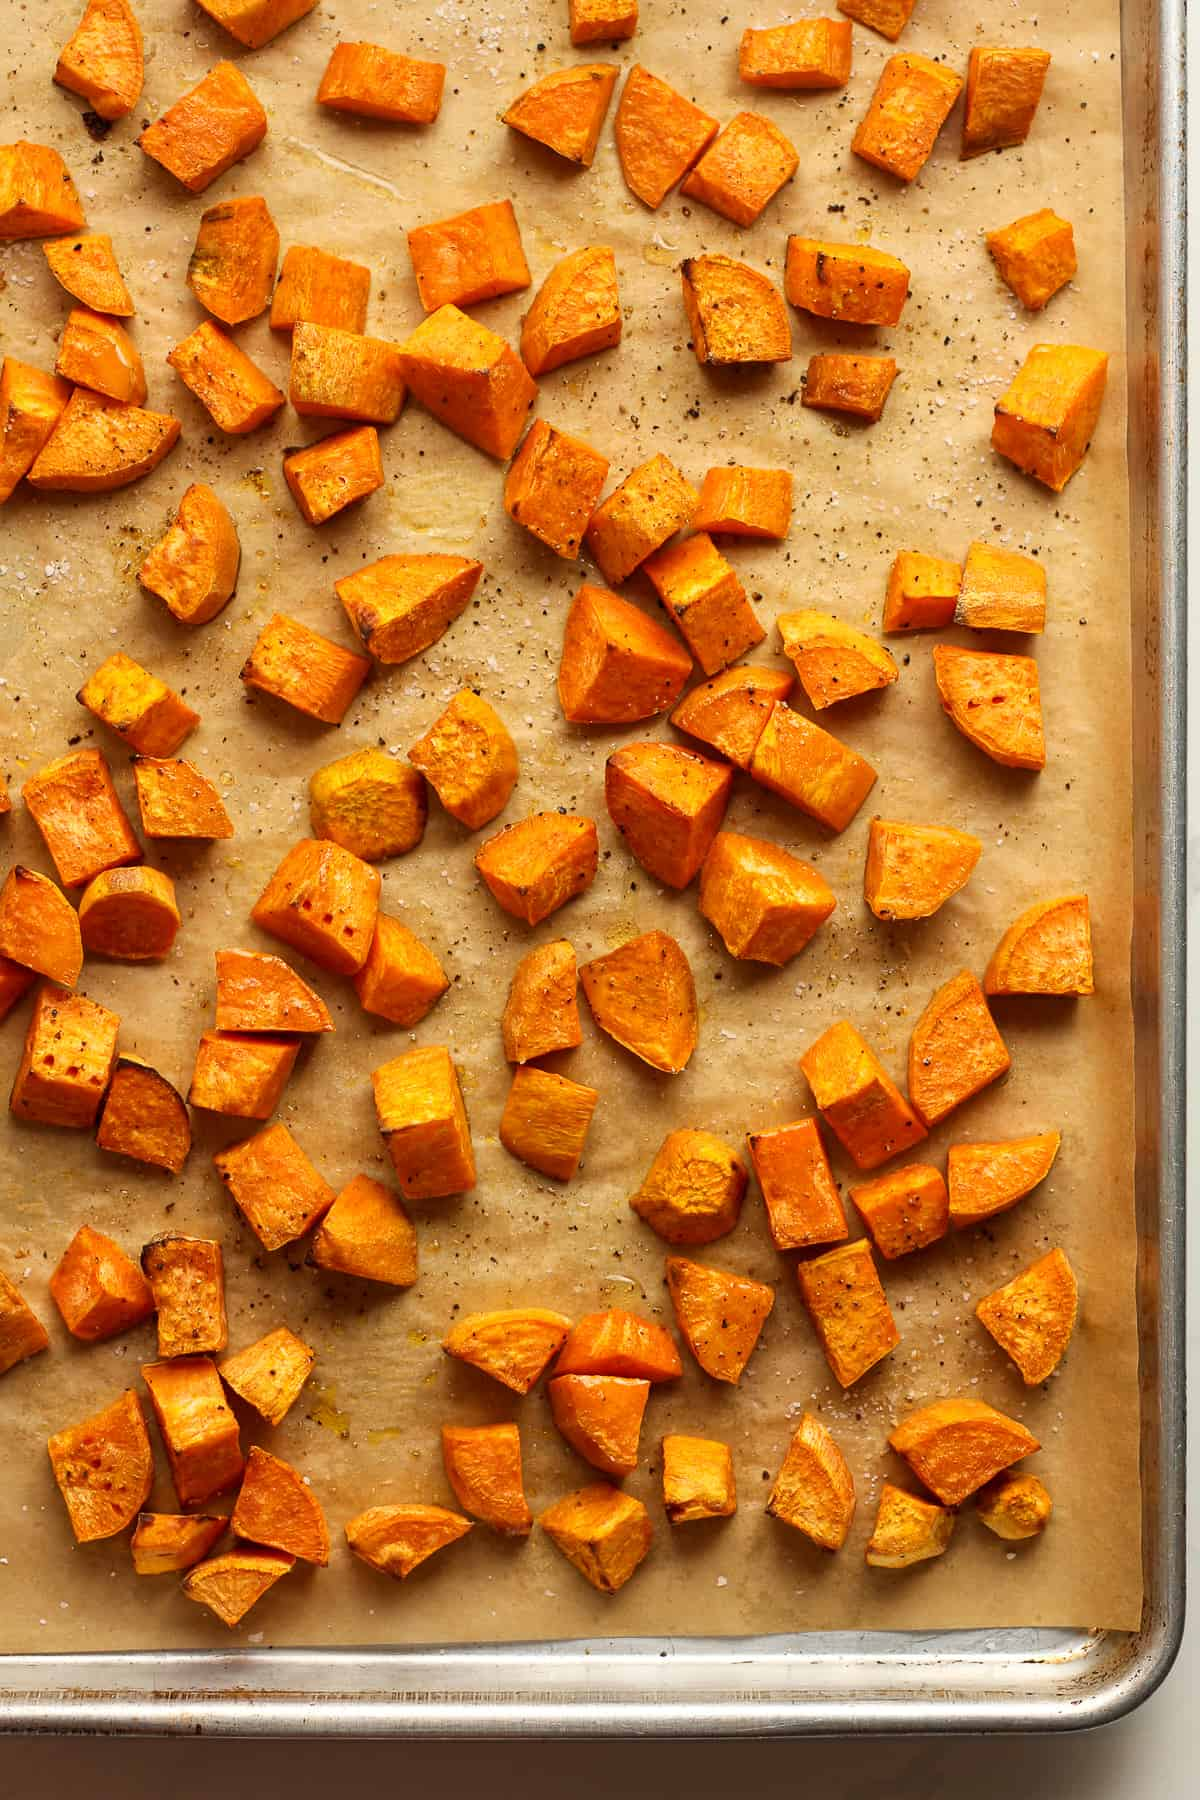 A pan of the roasted sweet potatoes.